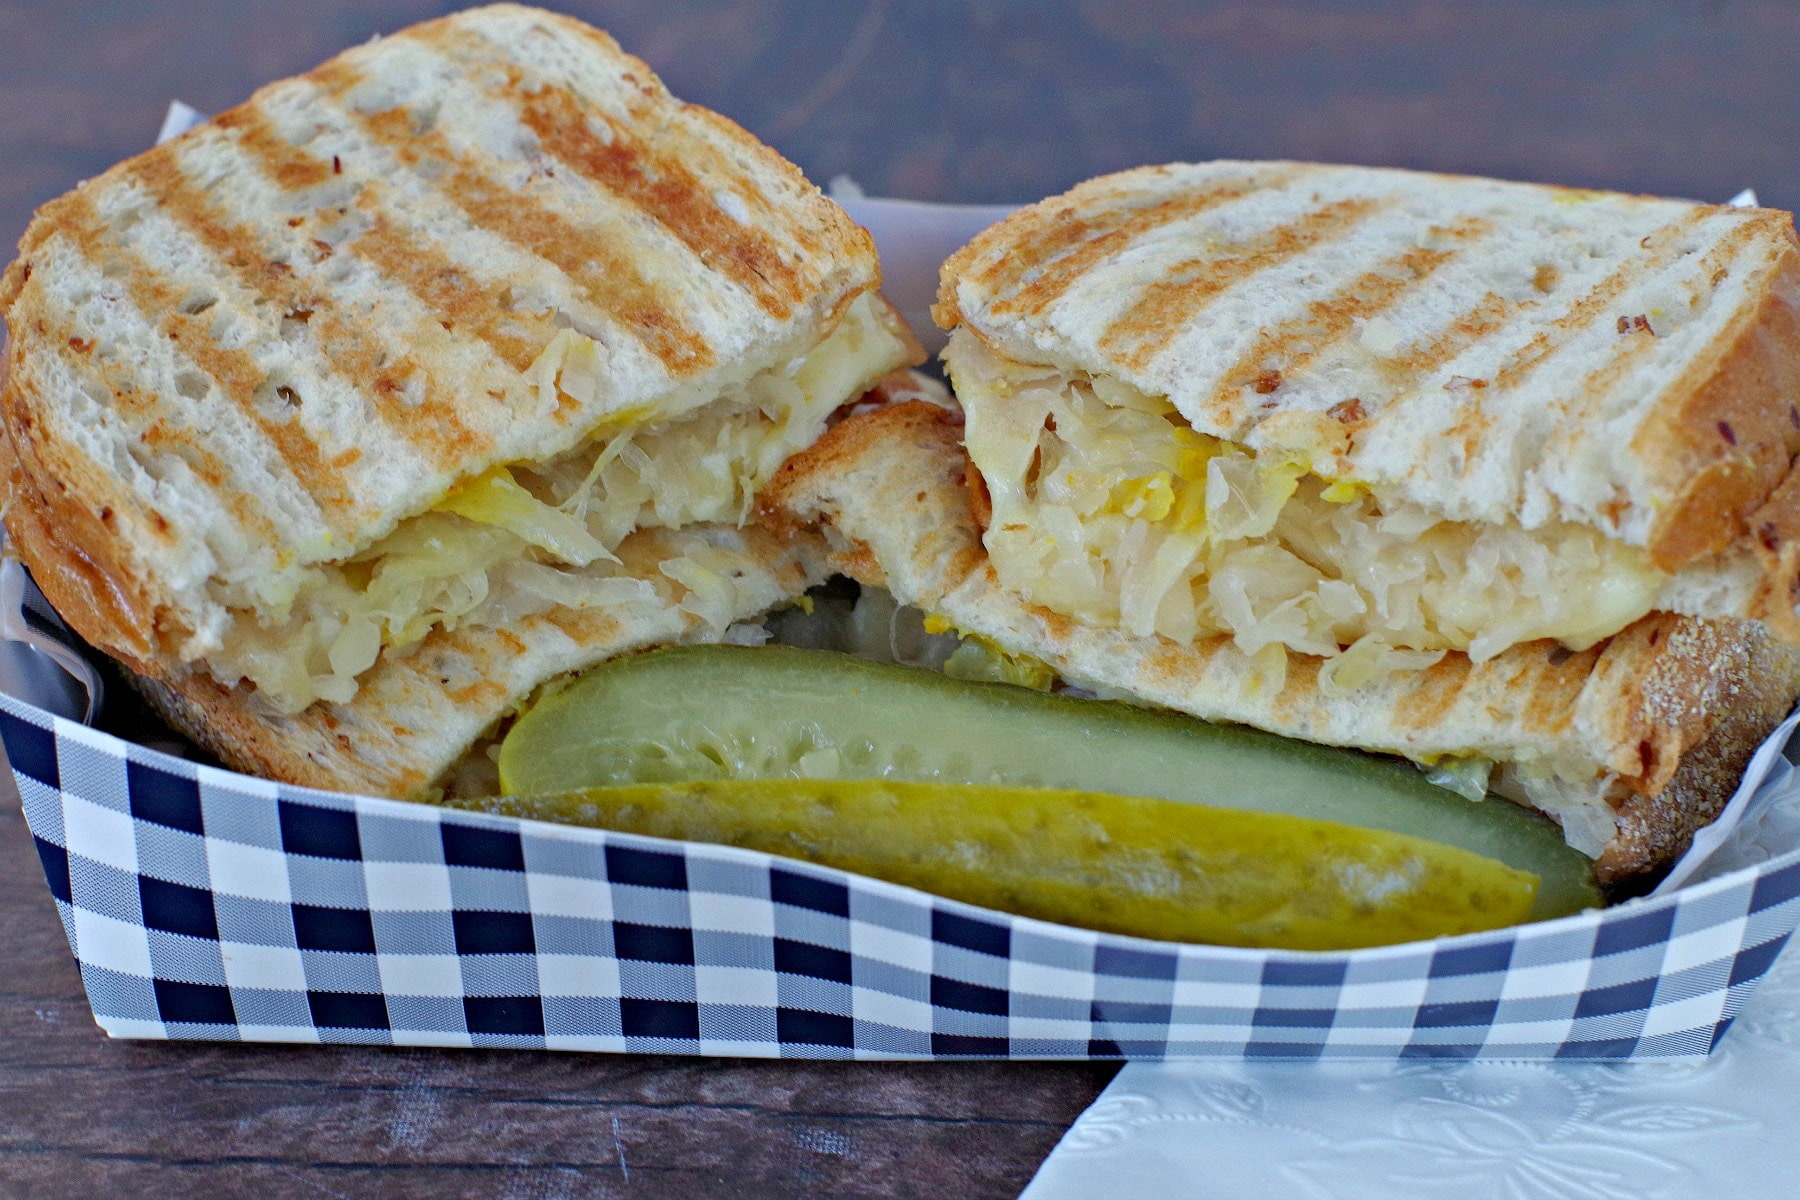 Turkey Reuben sliced in half in a paper blue checkered box with a pickle in front